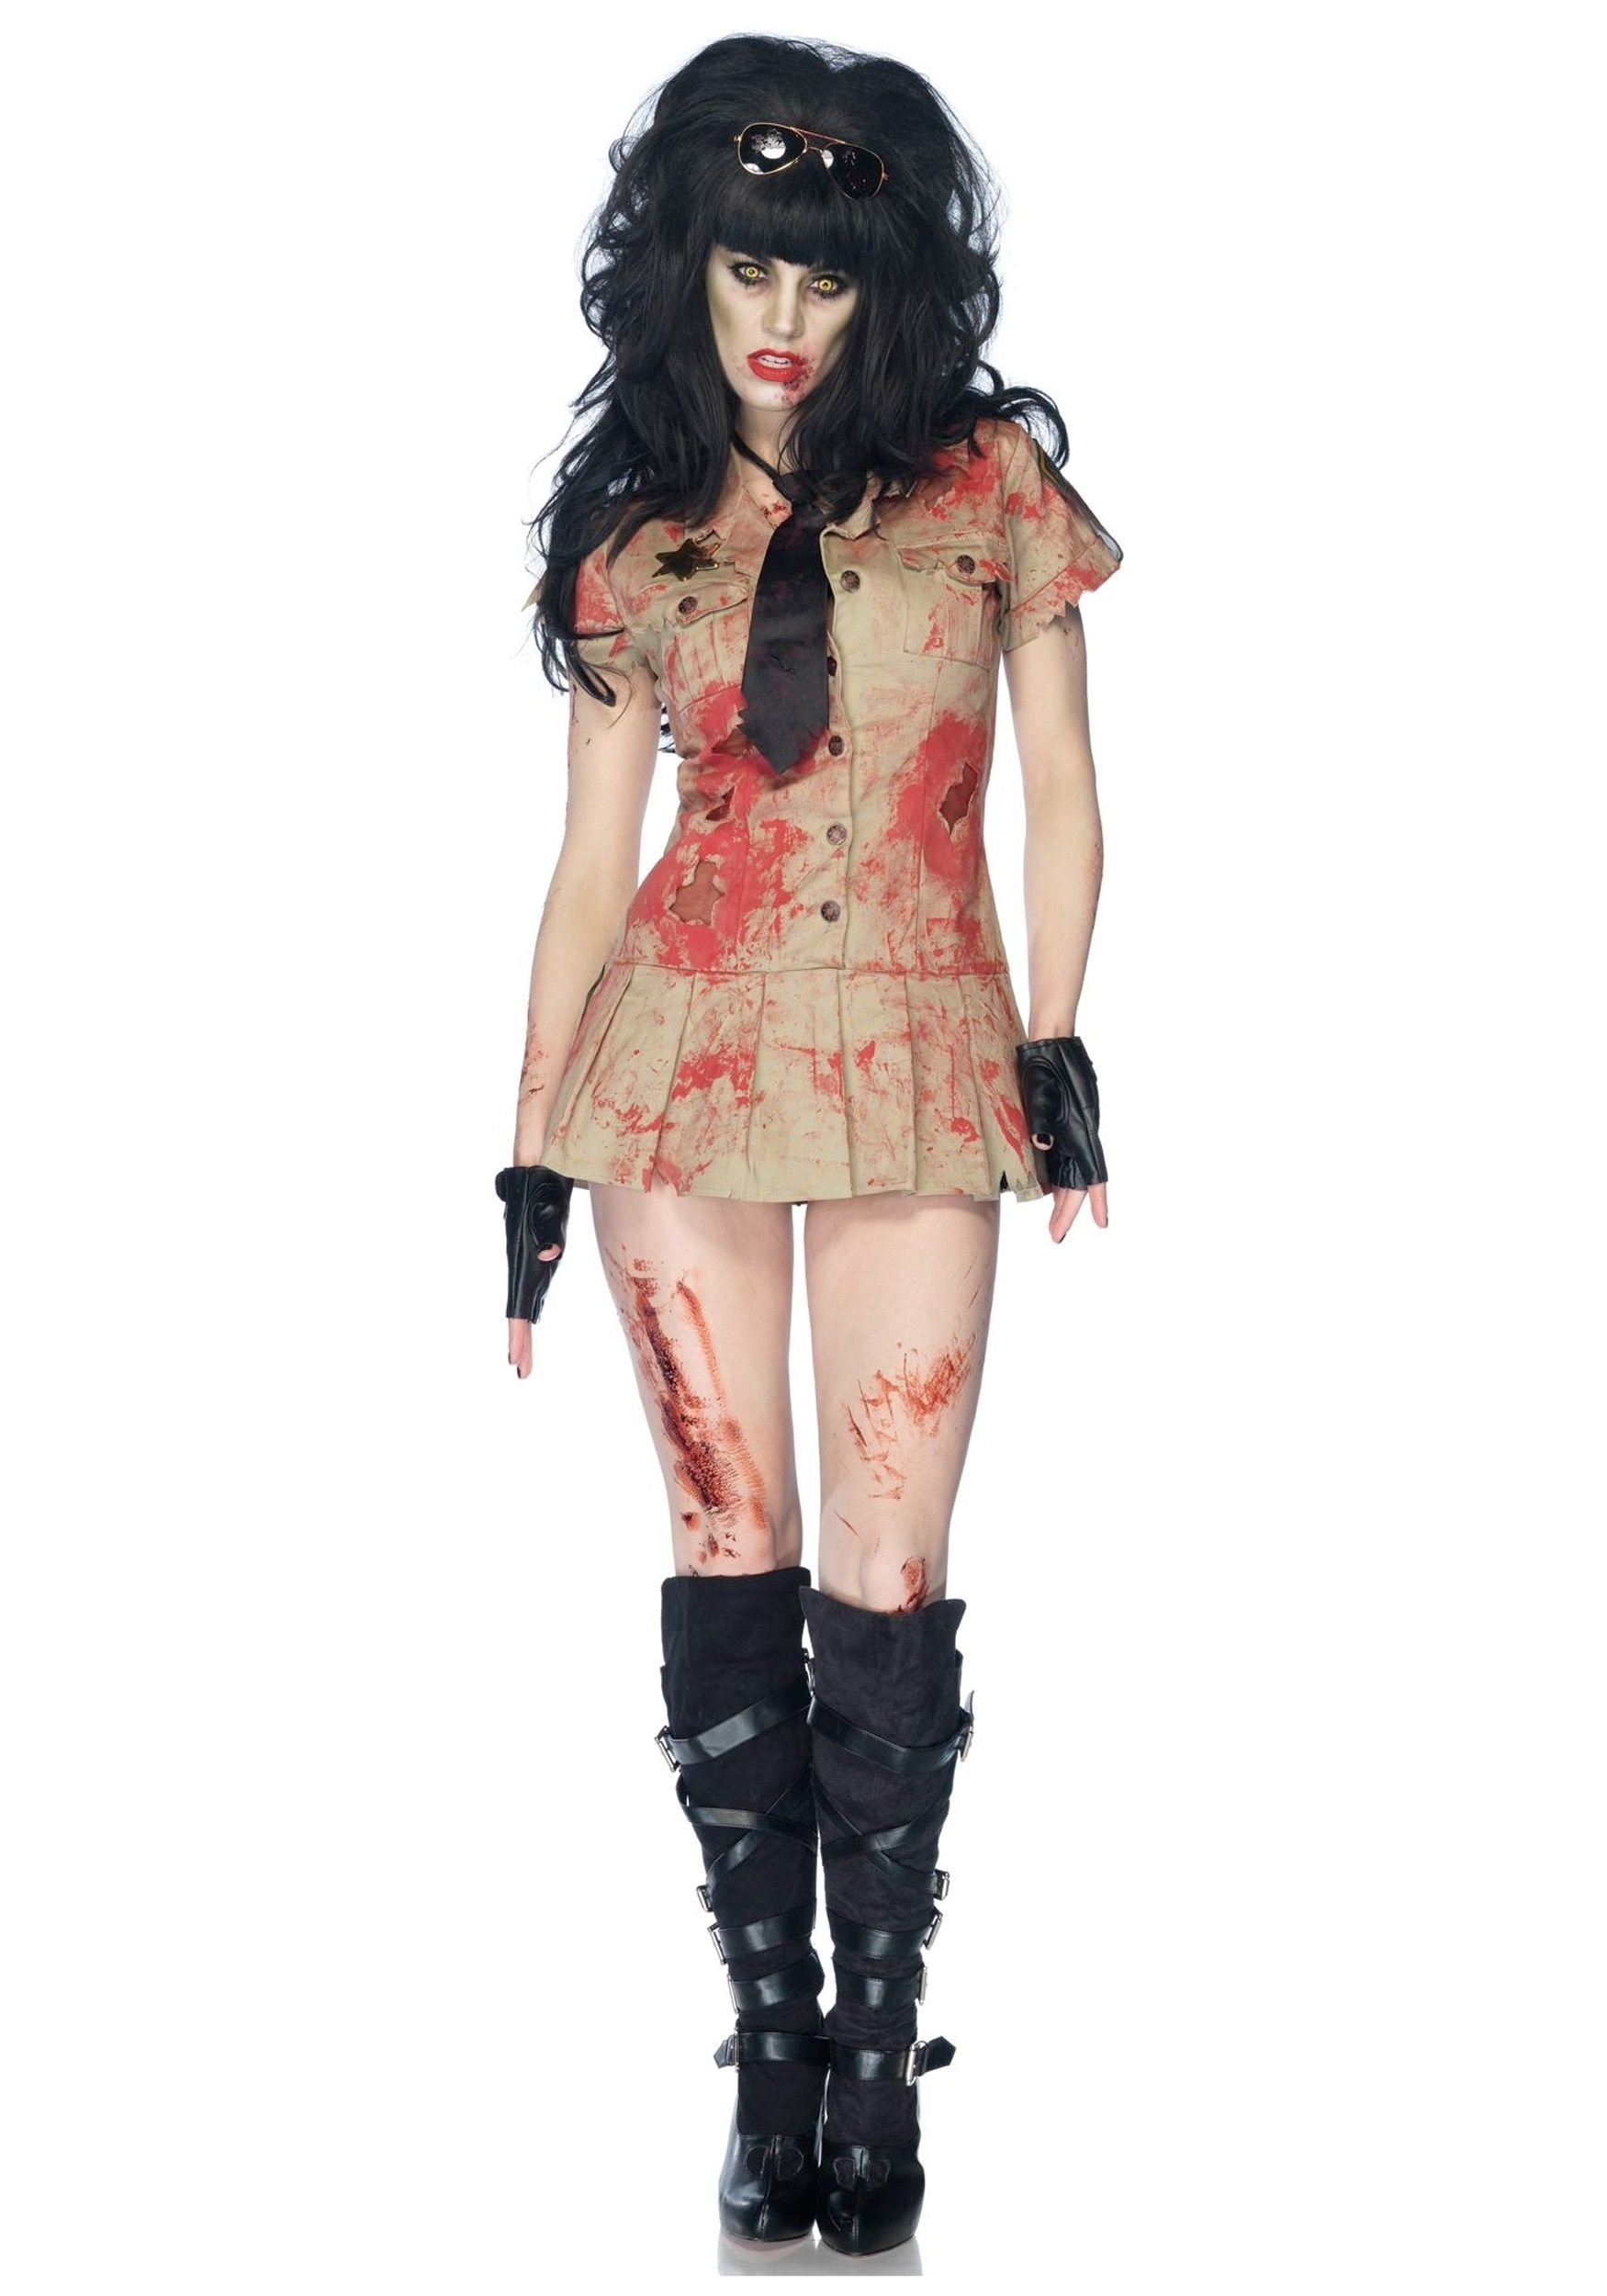 10 Spectacular Scary Halloween Costume Ideas For Women scary halloween costumes for women home scary costume ideas zombie